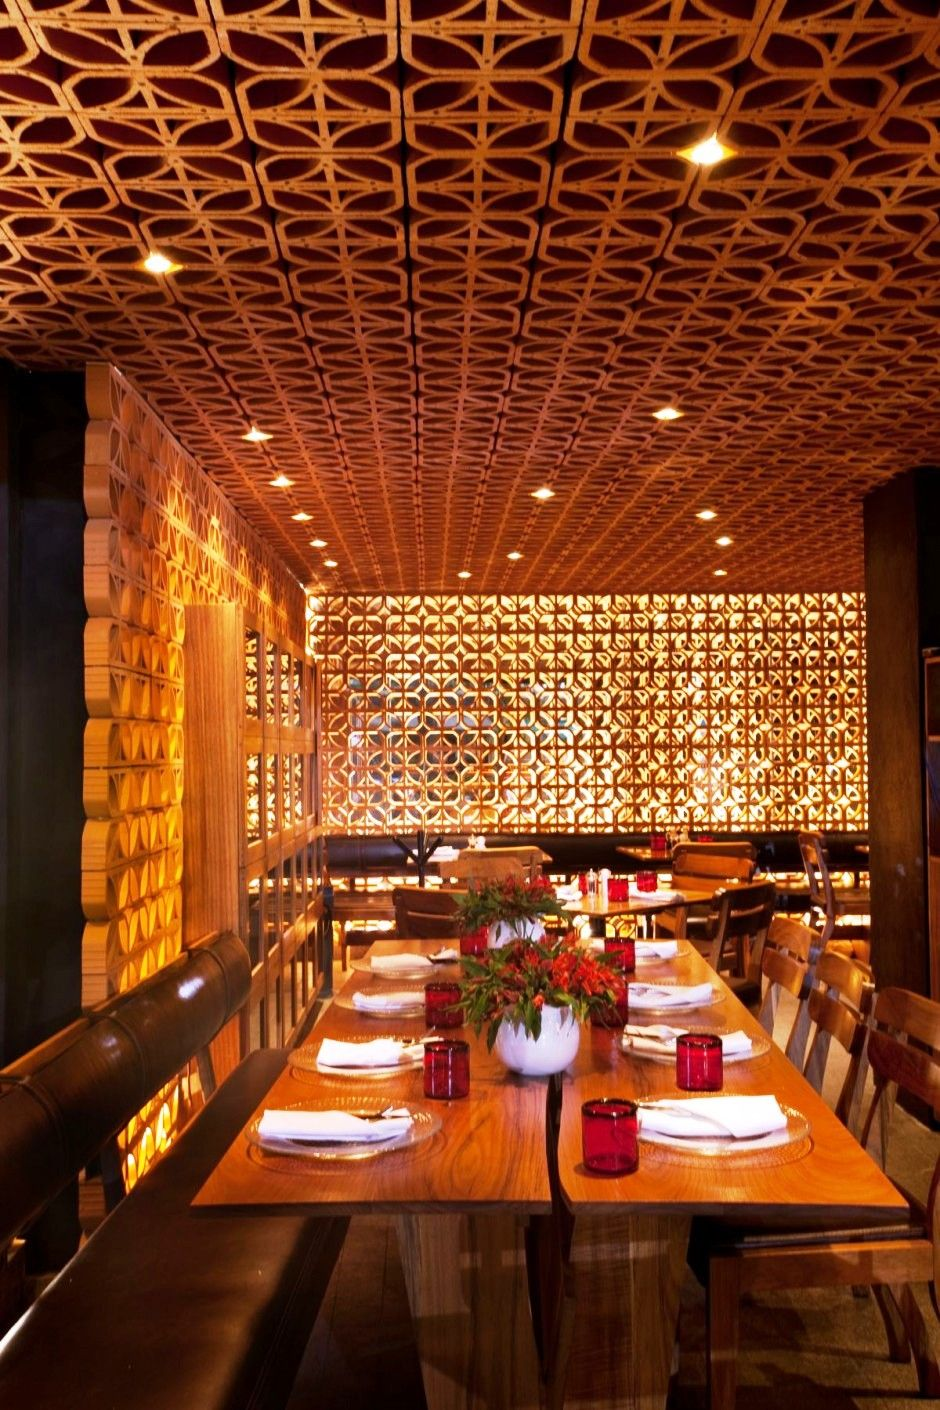 gold wood restaurant interior google search 75 wall street restaurant pinterest. Black Bedroom Furniture Sets. Home Design Ideas